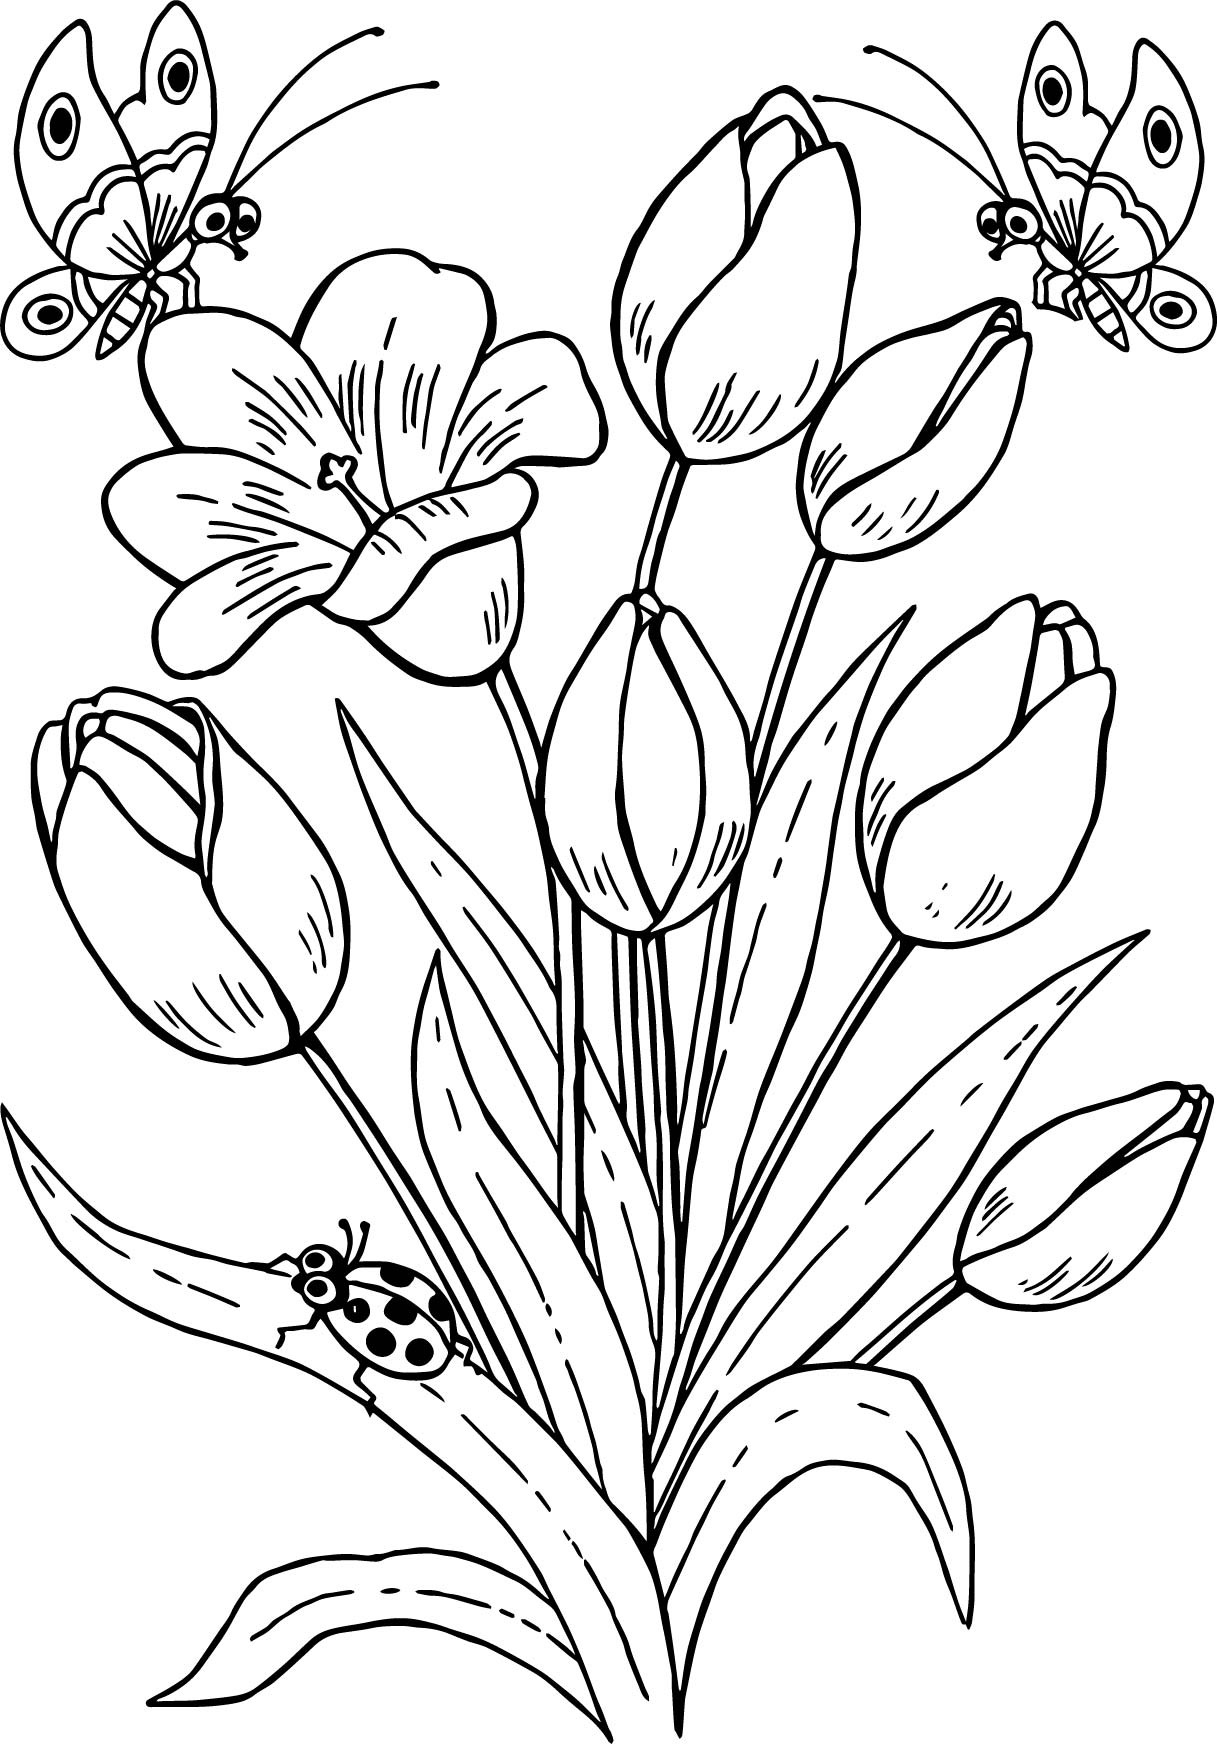 Tulip and roses coloring pages tulip best free coloring for Coloring pages of a flower